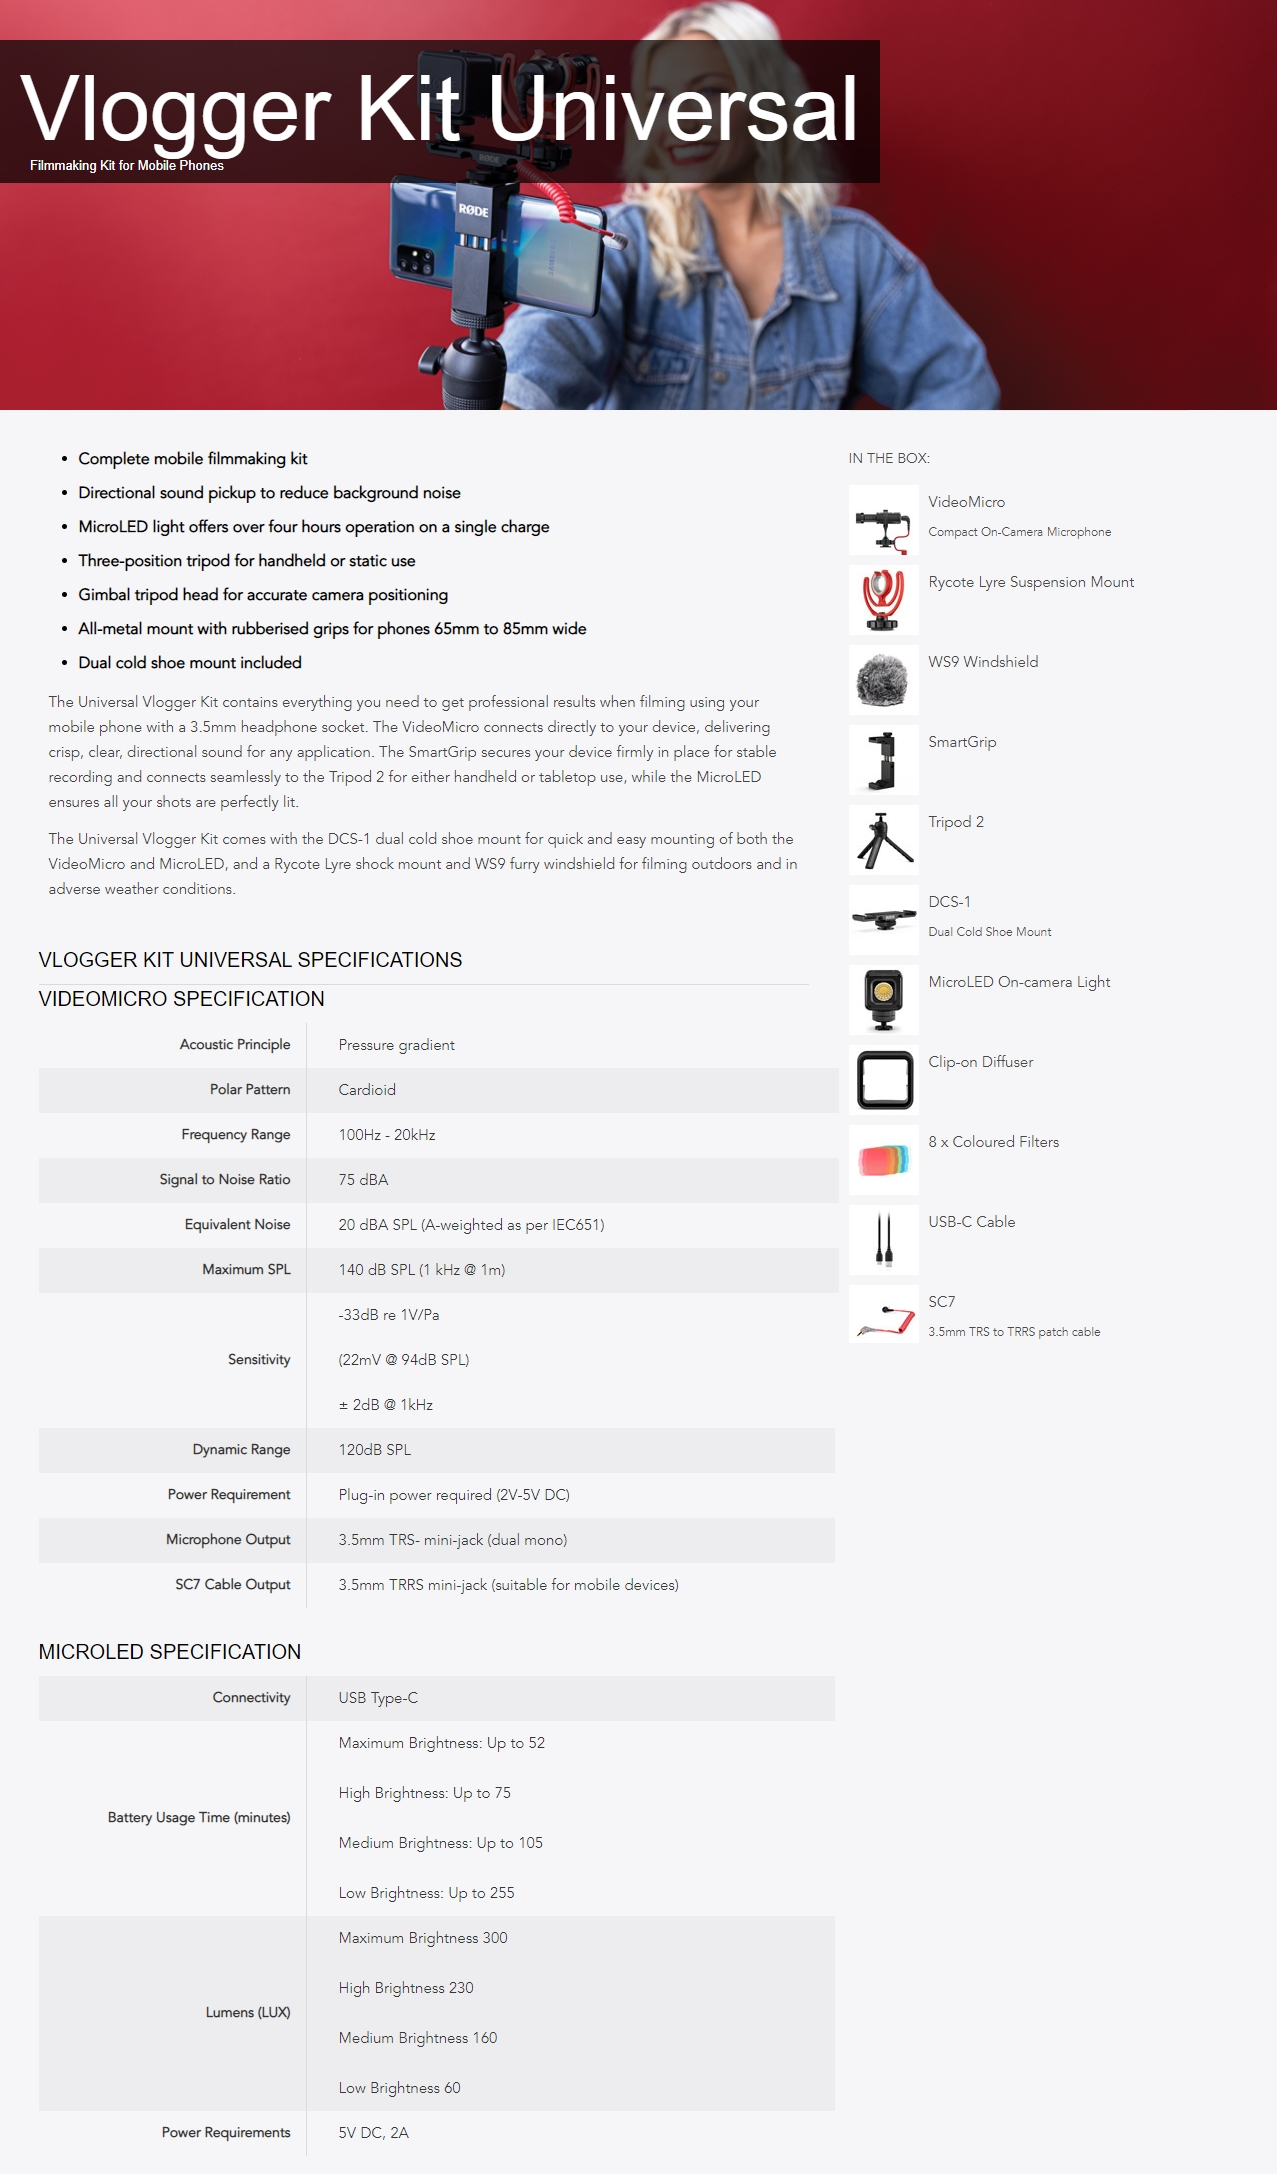 A large marketing image providing additional information about the product RODE Vlogger Universal Kit - Additional alt info not provided